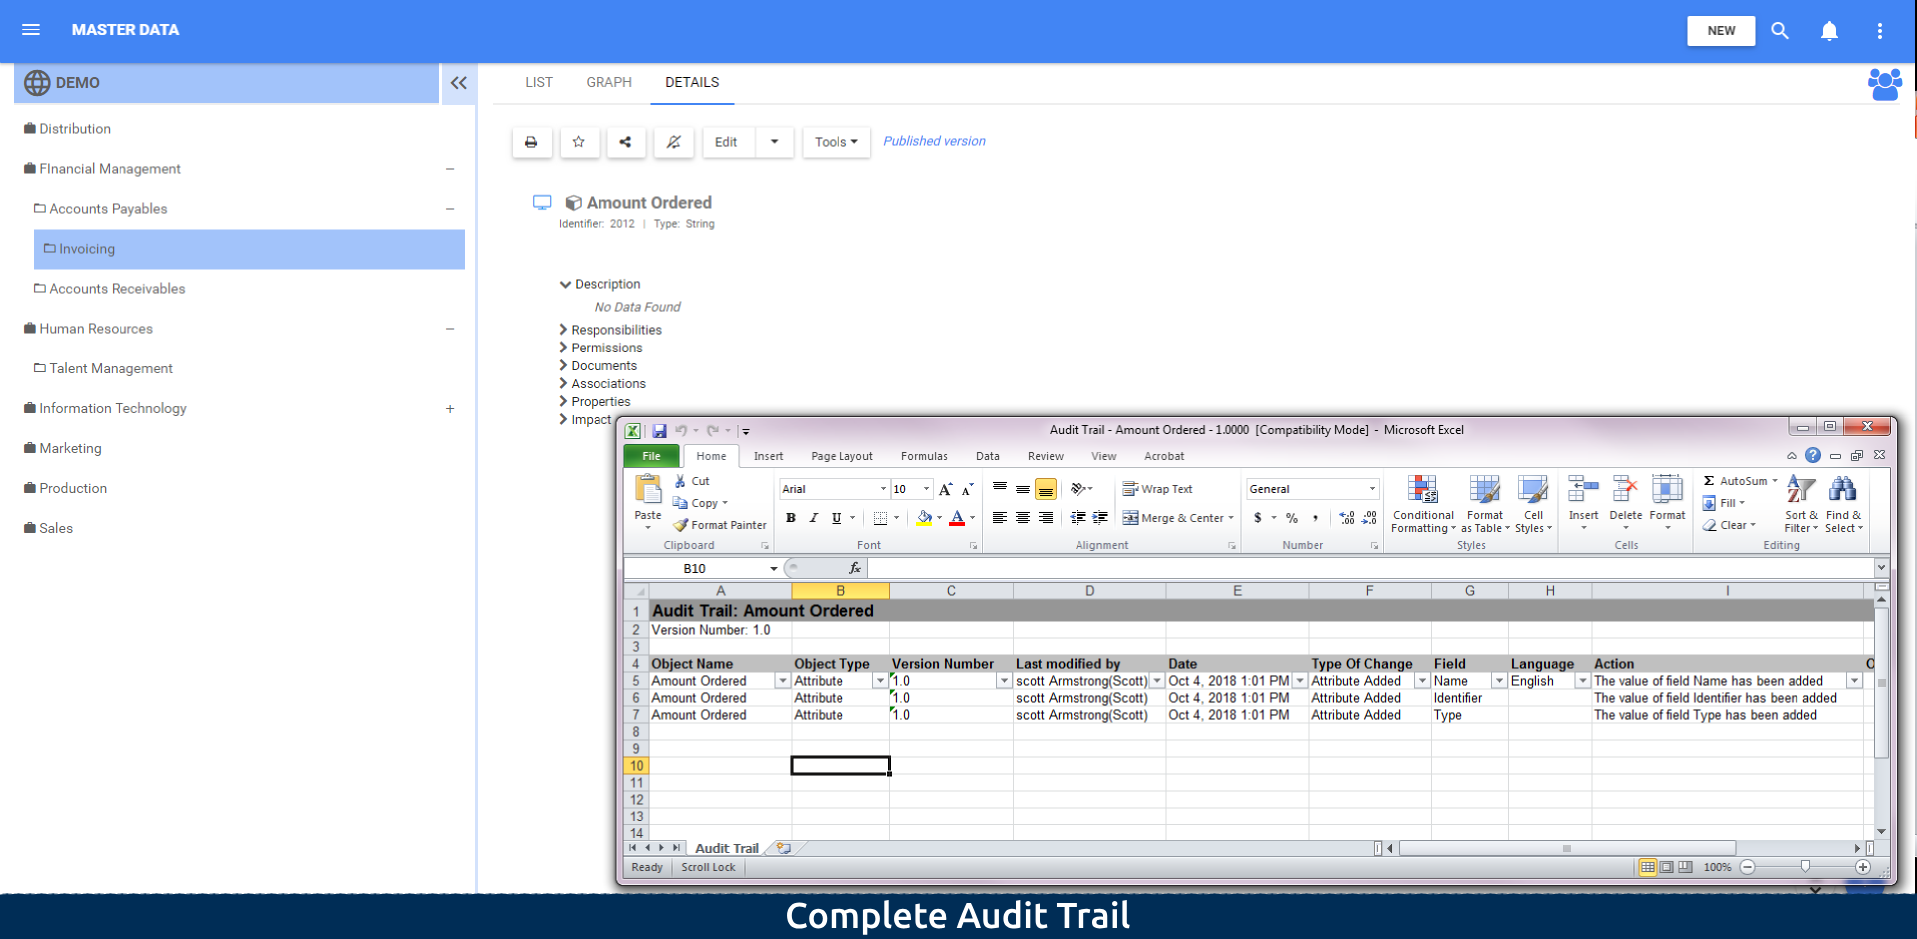 3-3 Complete Audit Trail